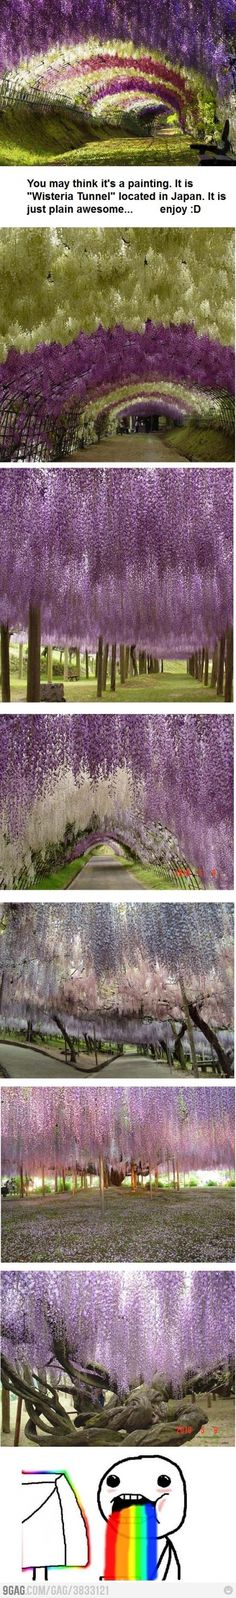 Awesome hanging flowers.